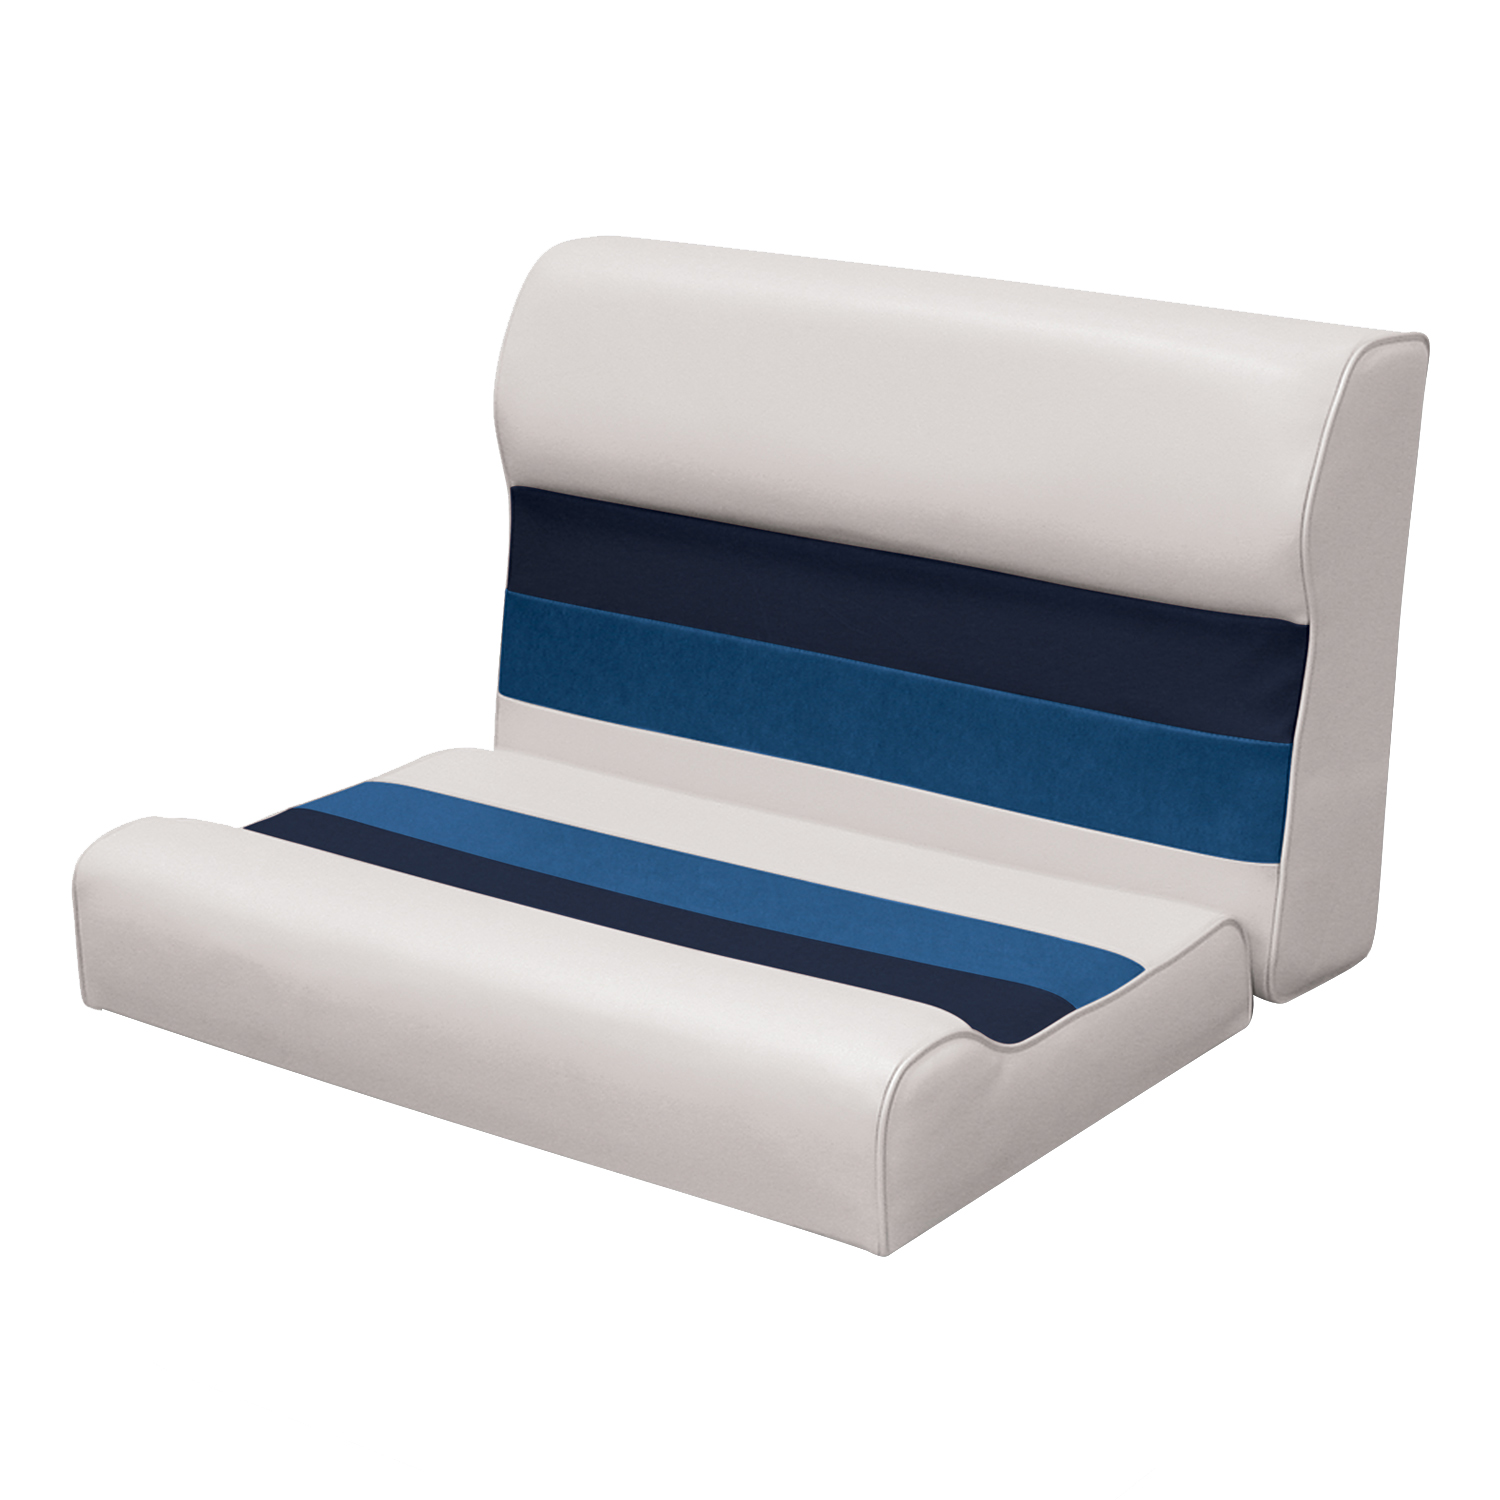 """Wise 8WD95-1008 Deluxe Series Pontoon 28"""" Bench Seat and Backrest Cushion Set Only, Color: White/Navy/Blue"""